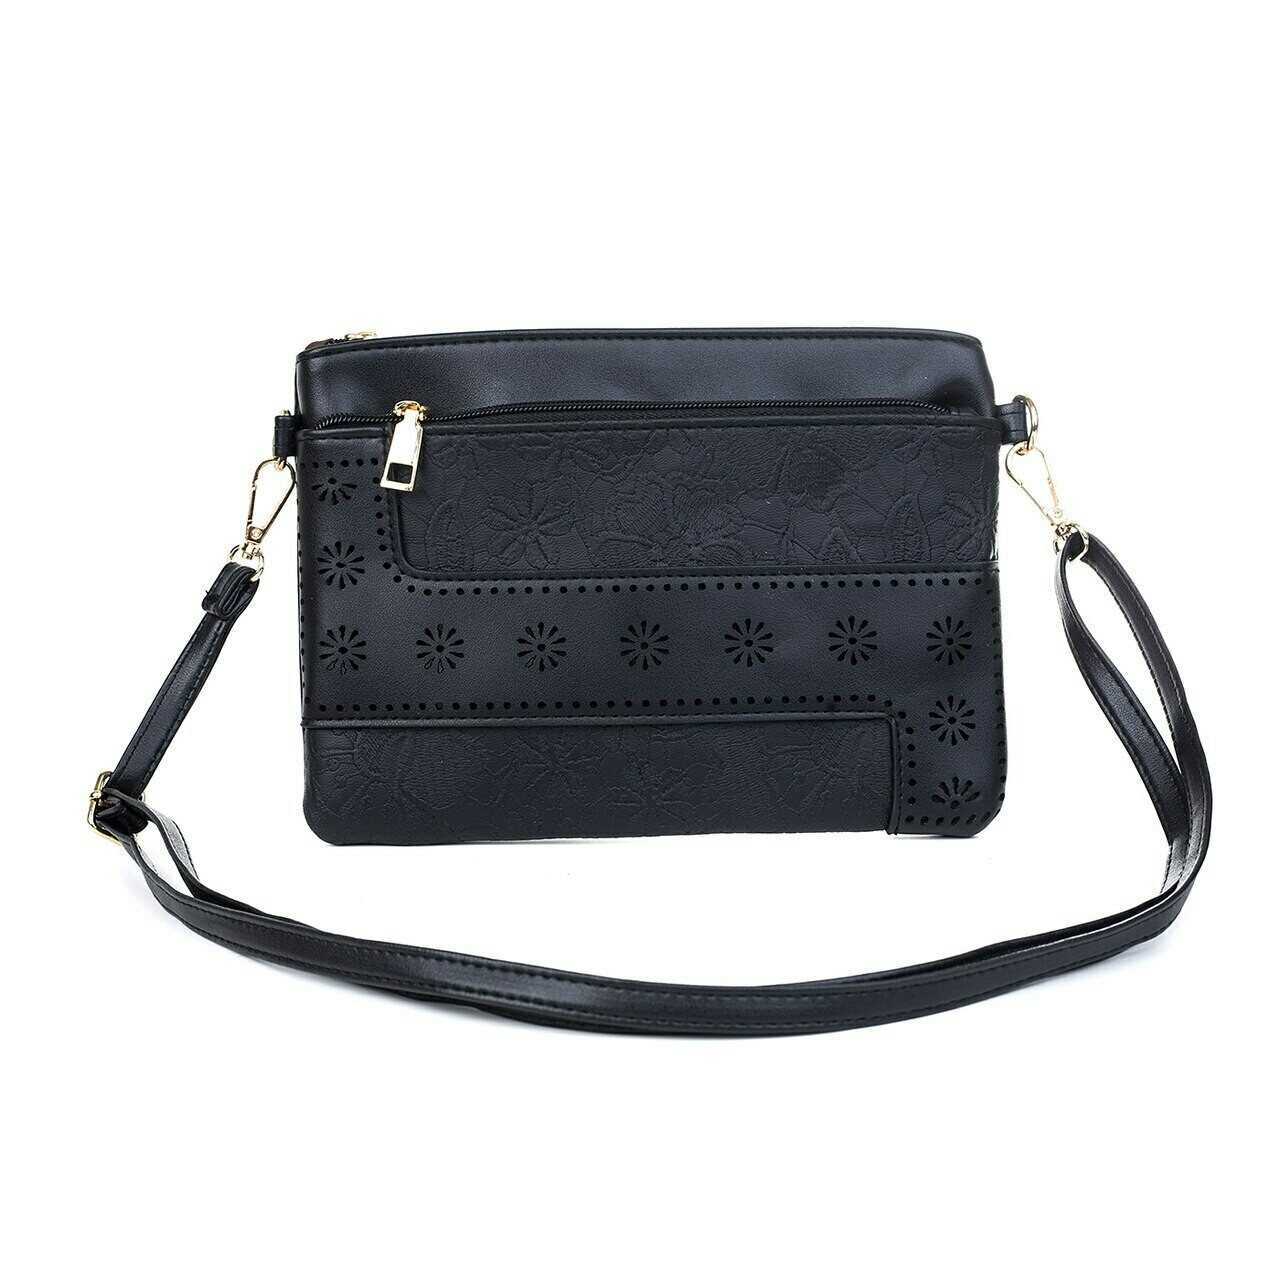 Black Clutch/Shoulder Bag